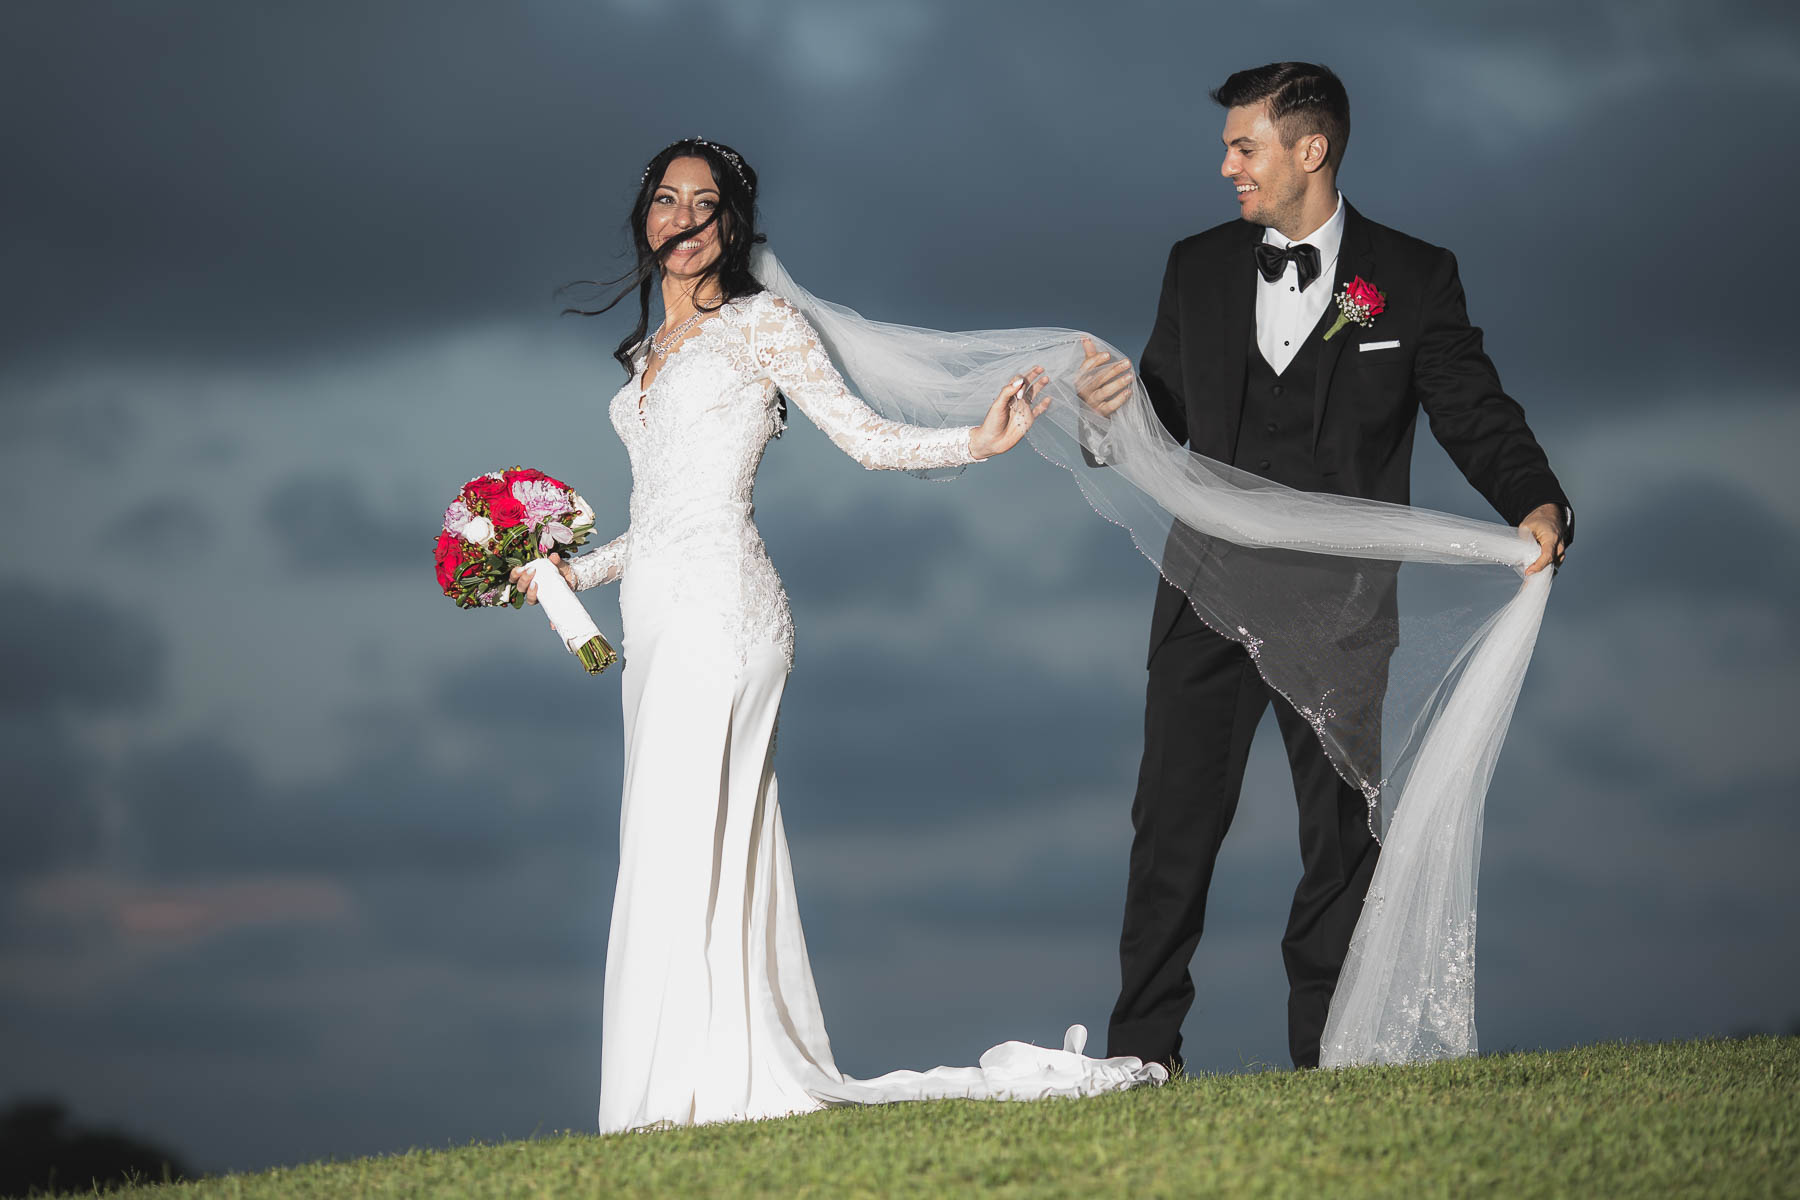 Couture Bridal Photography offers the best information and tips on things to know when considering a wedding photographer